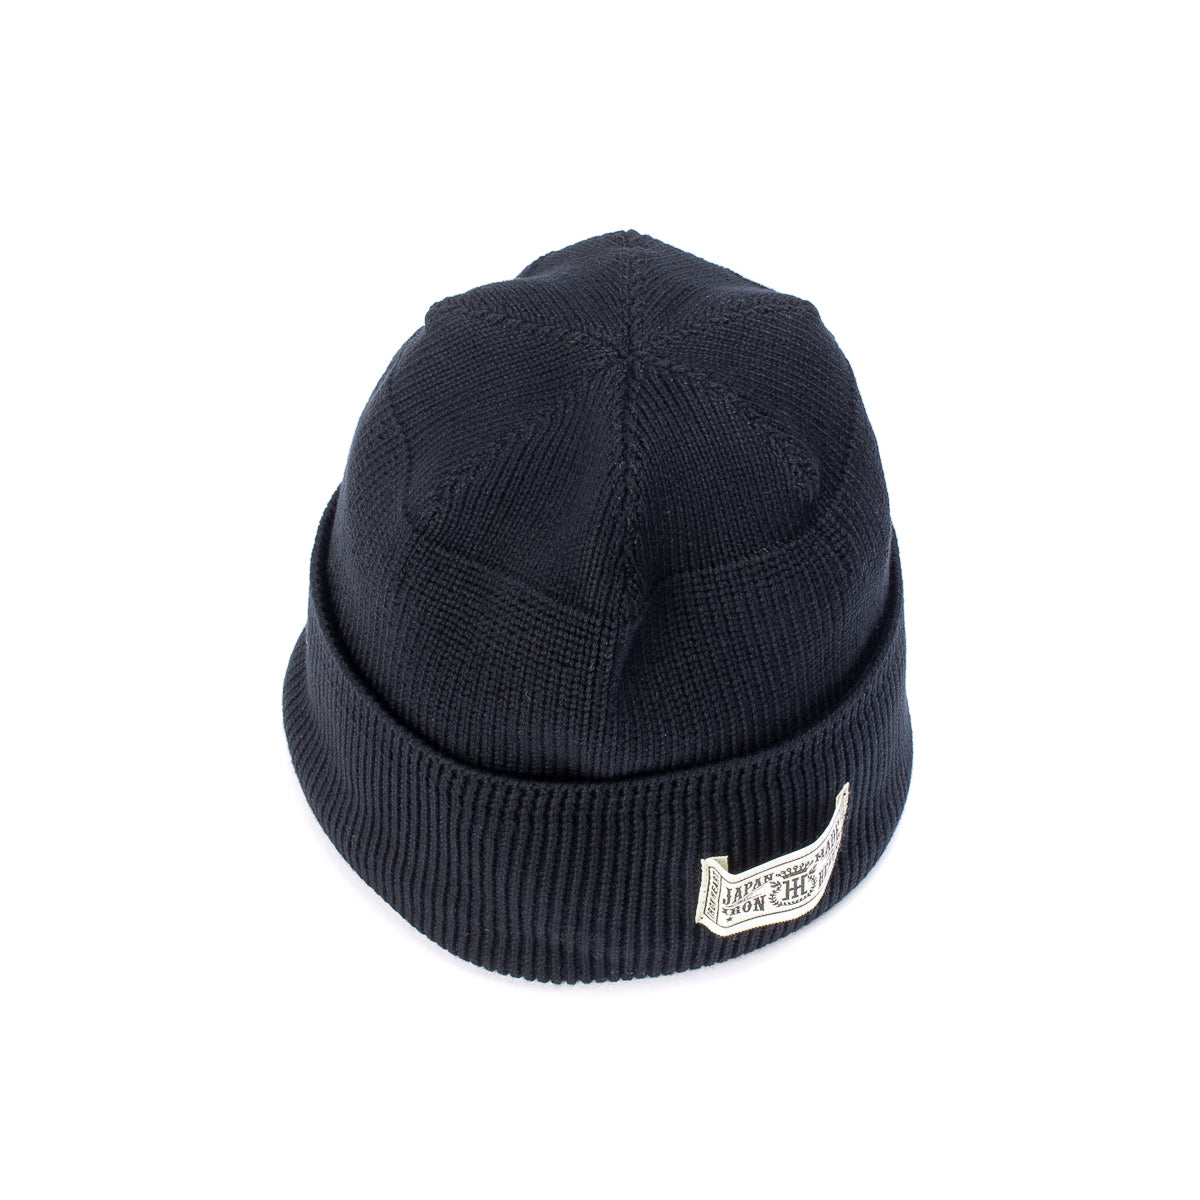 IHG-081 - Cotton Ribbed Beanie Black